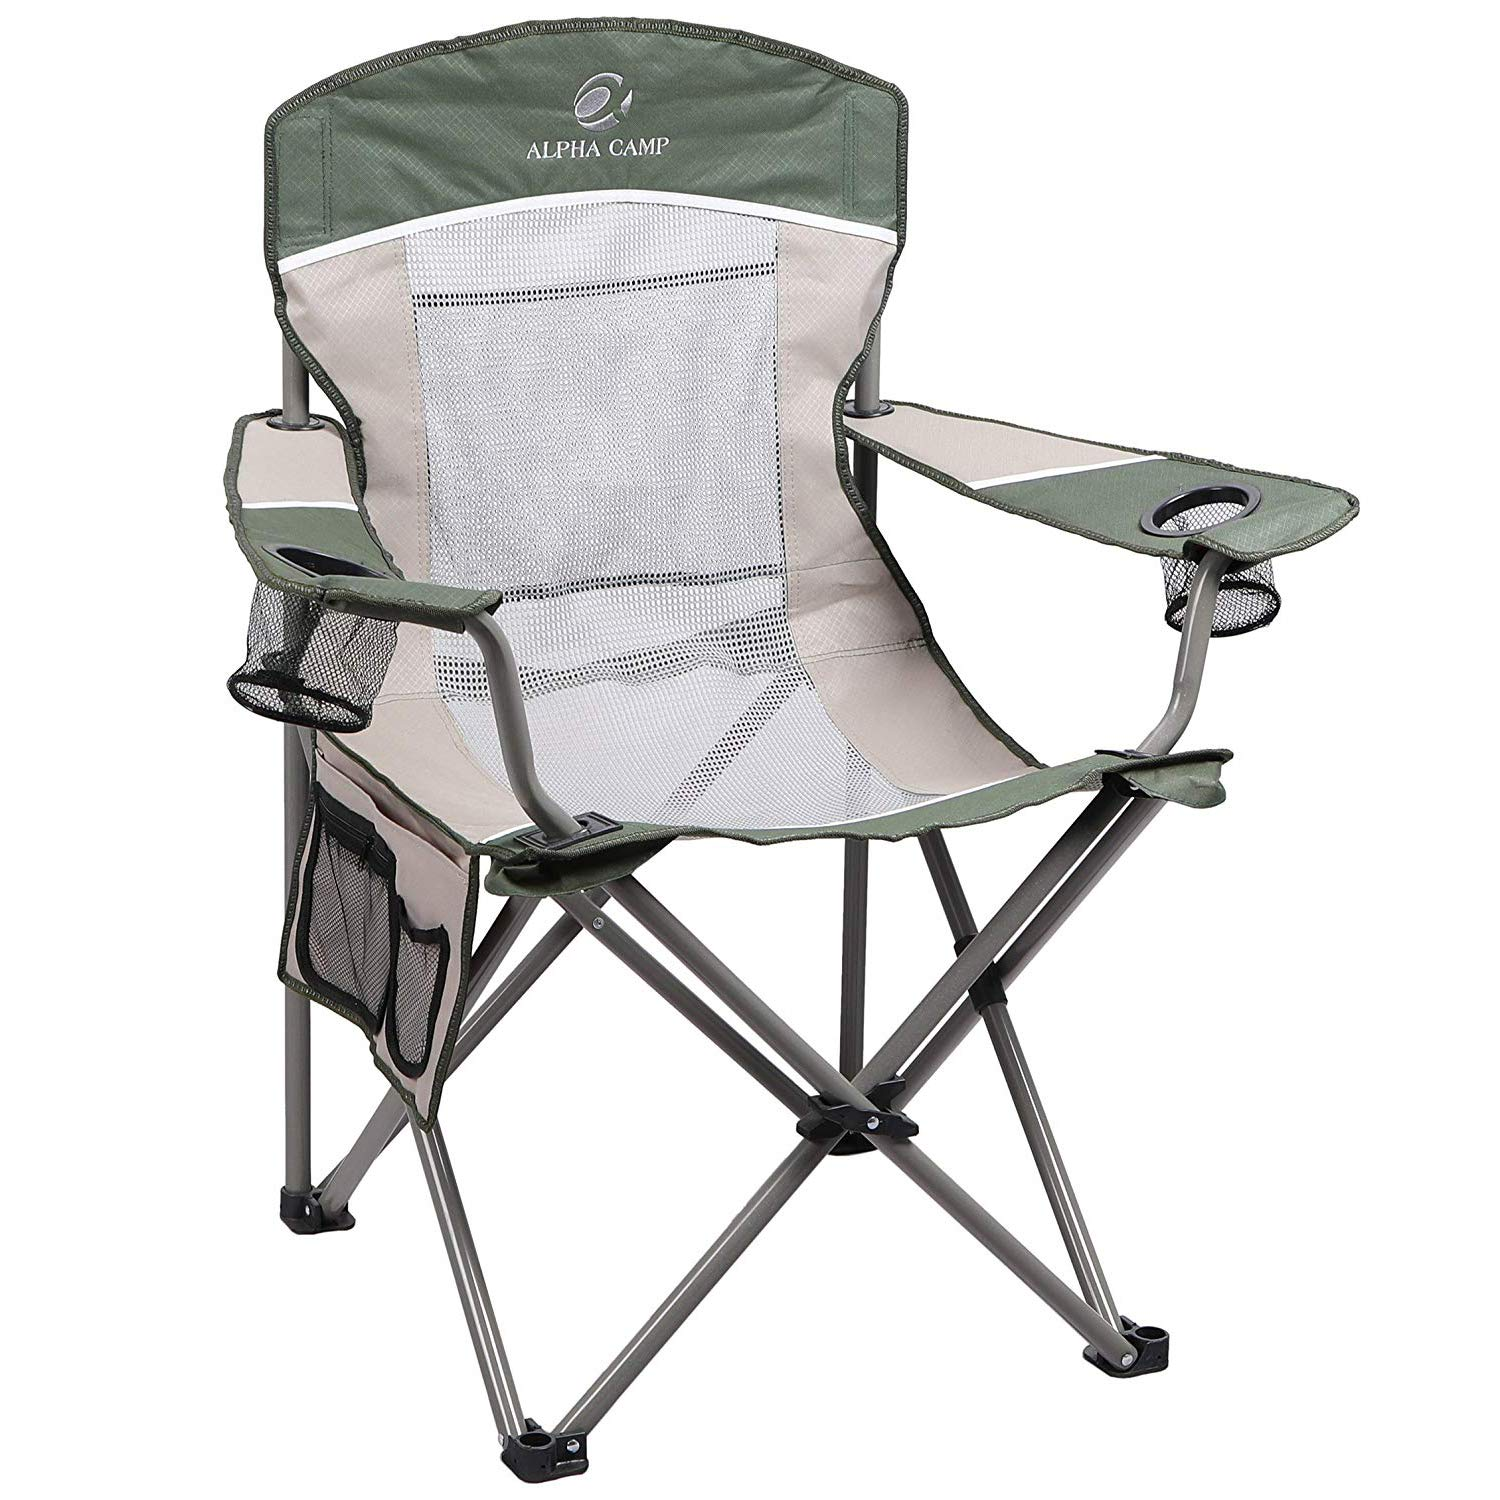 ALPHA CAMP Oversized Mesh Back Camping Folding Chair Heavy Duty Support 350 LBS Collapsible Steel Frame Quad Chair Padded Arm Chair with Cup Holder Portable for Outdoor (Green) by ALPHA CAMP